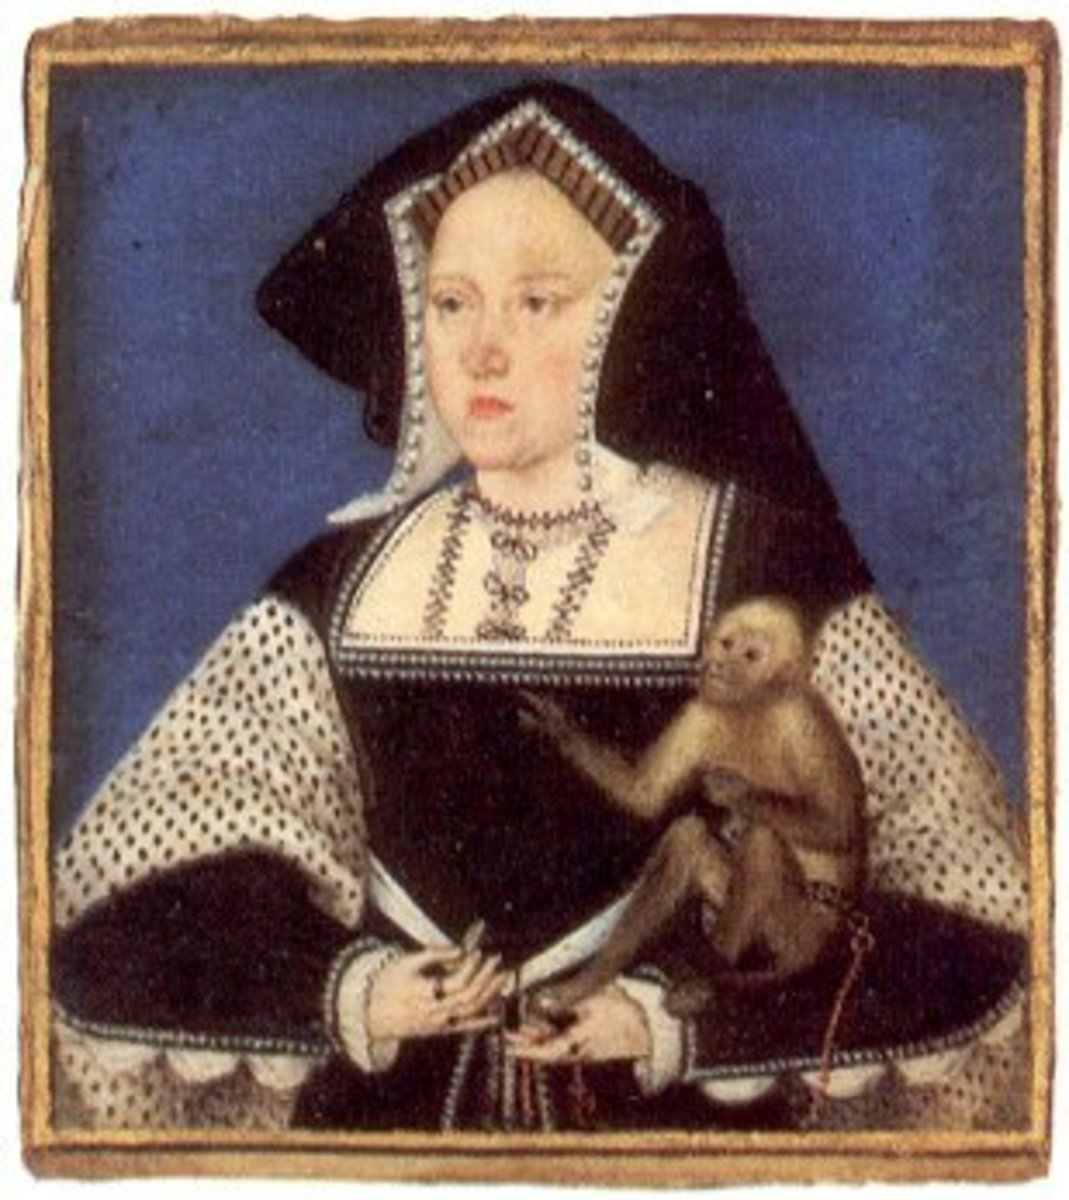 A miniature of Katherine holding a monkey.